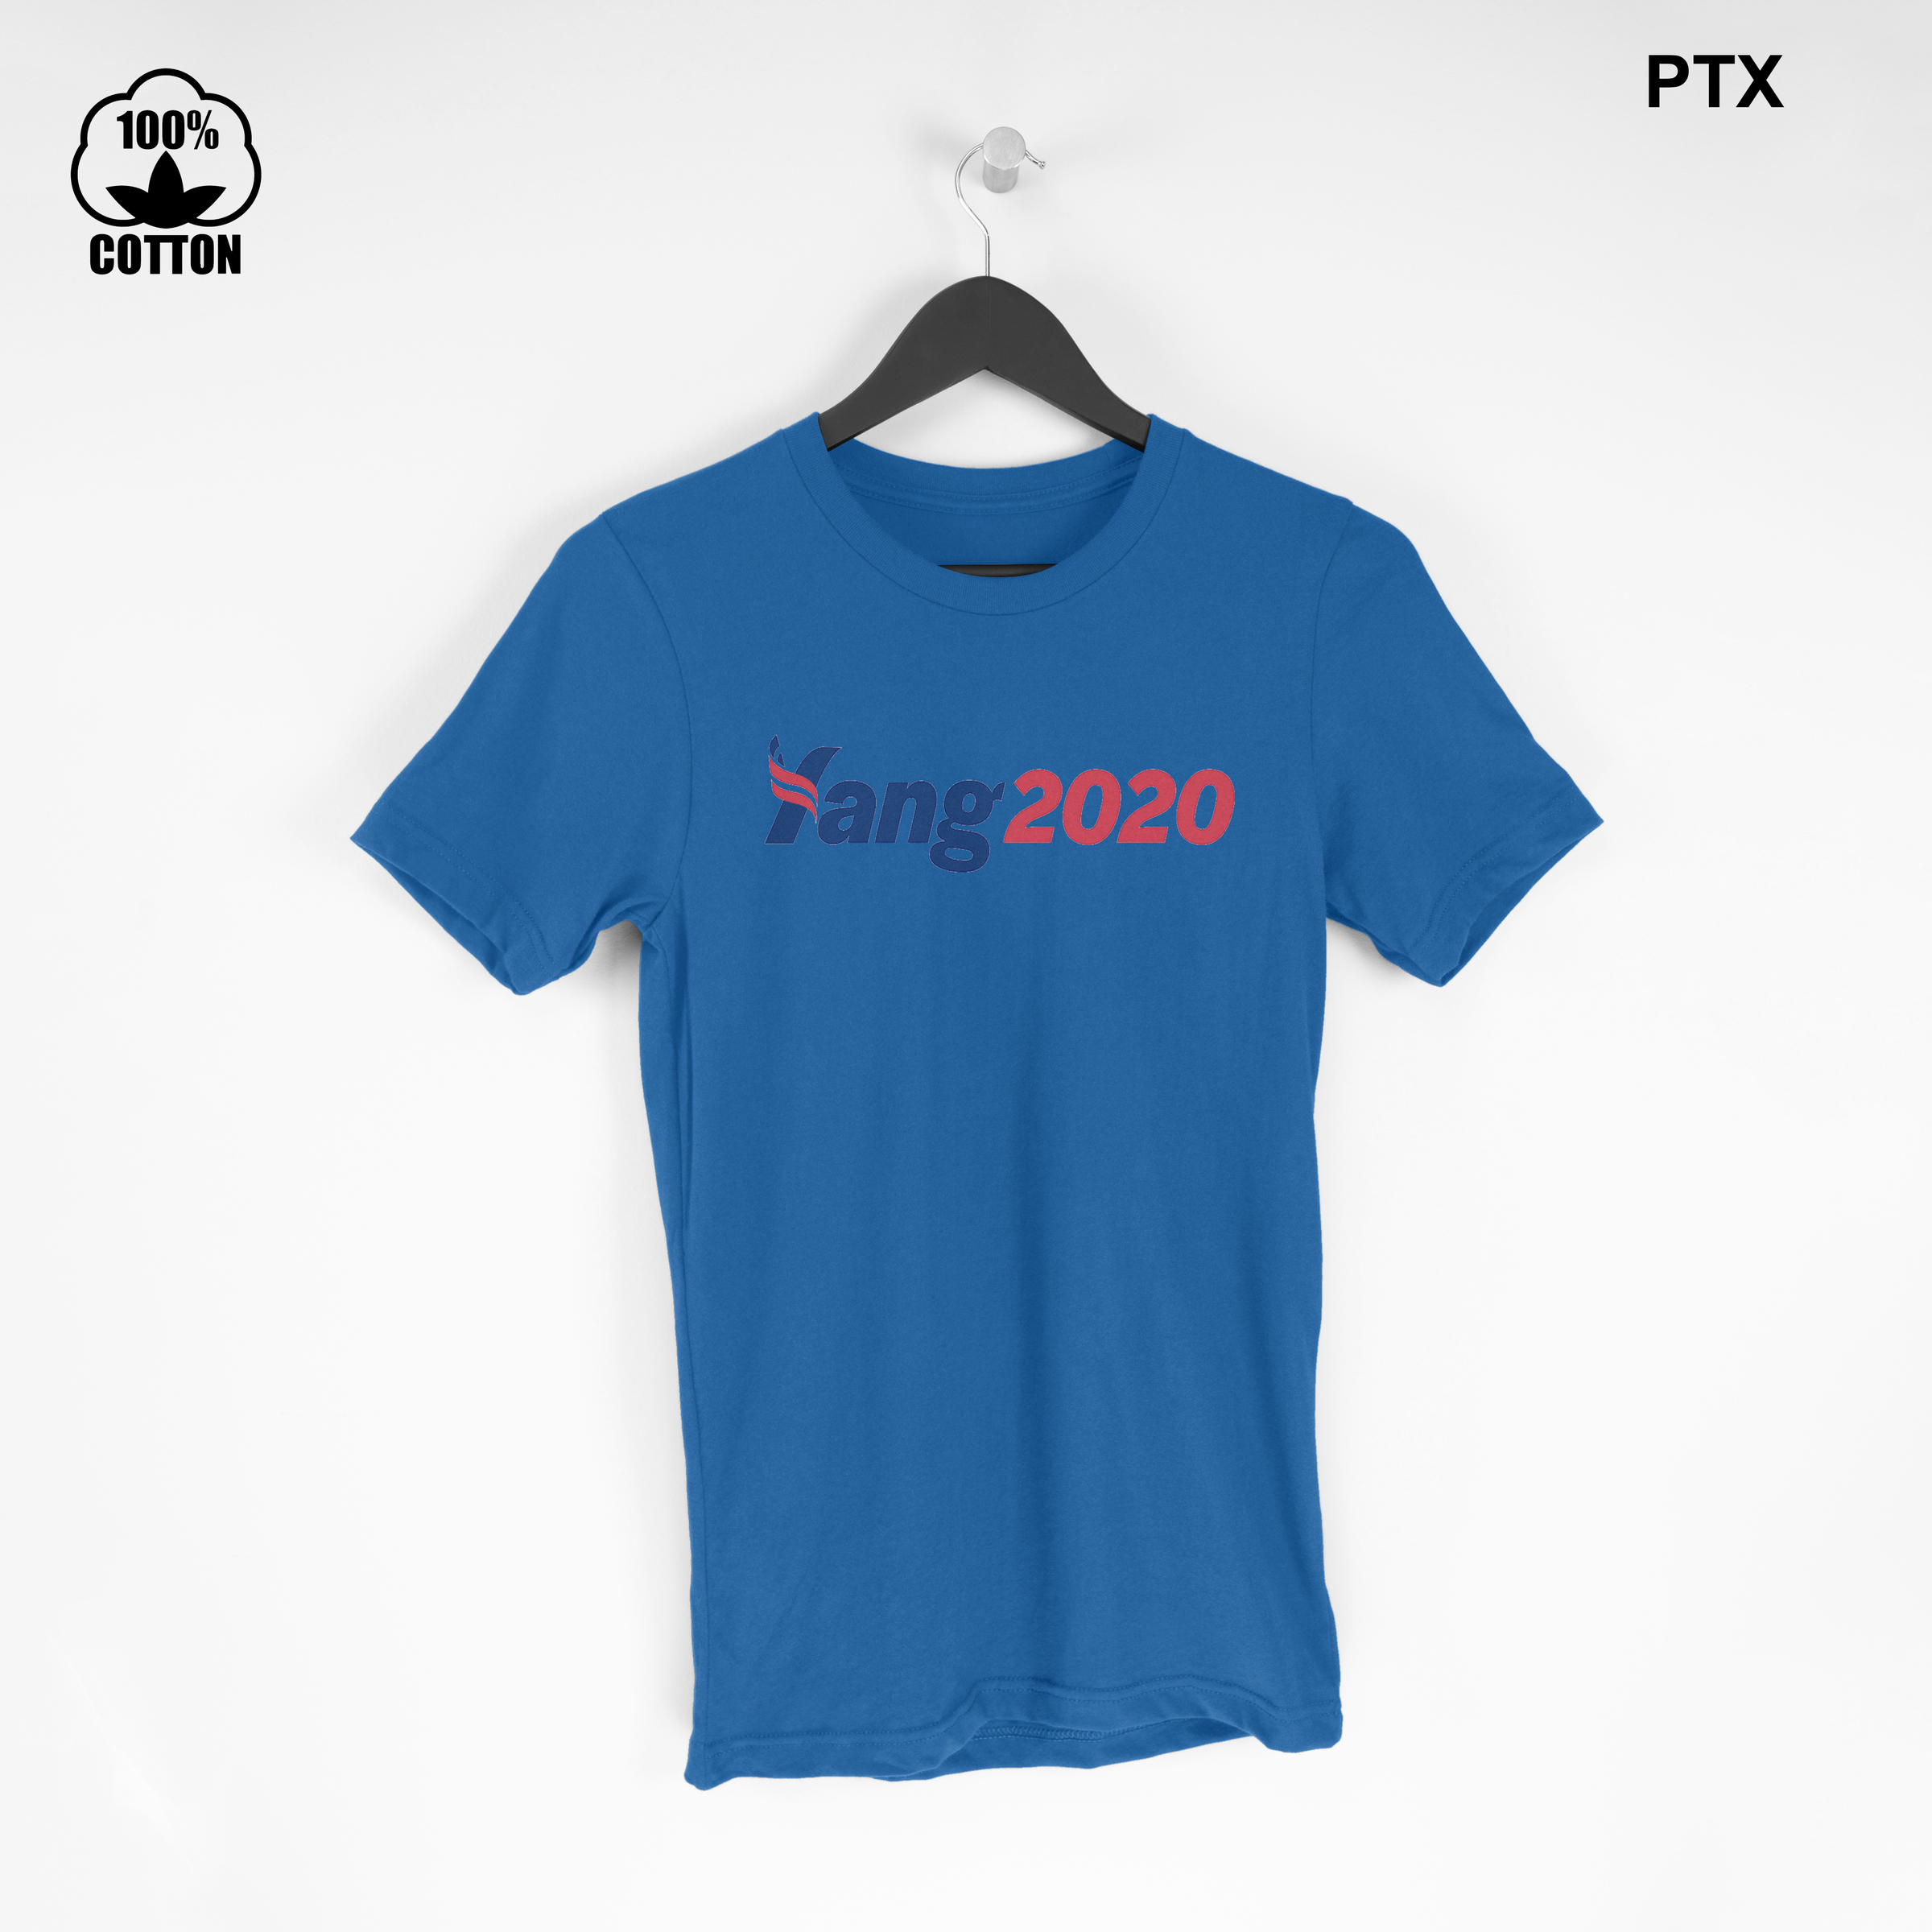 Andrew Yang 2020 For President T-Shirt Size S-XXL USA  RoyalBlue.jpg